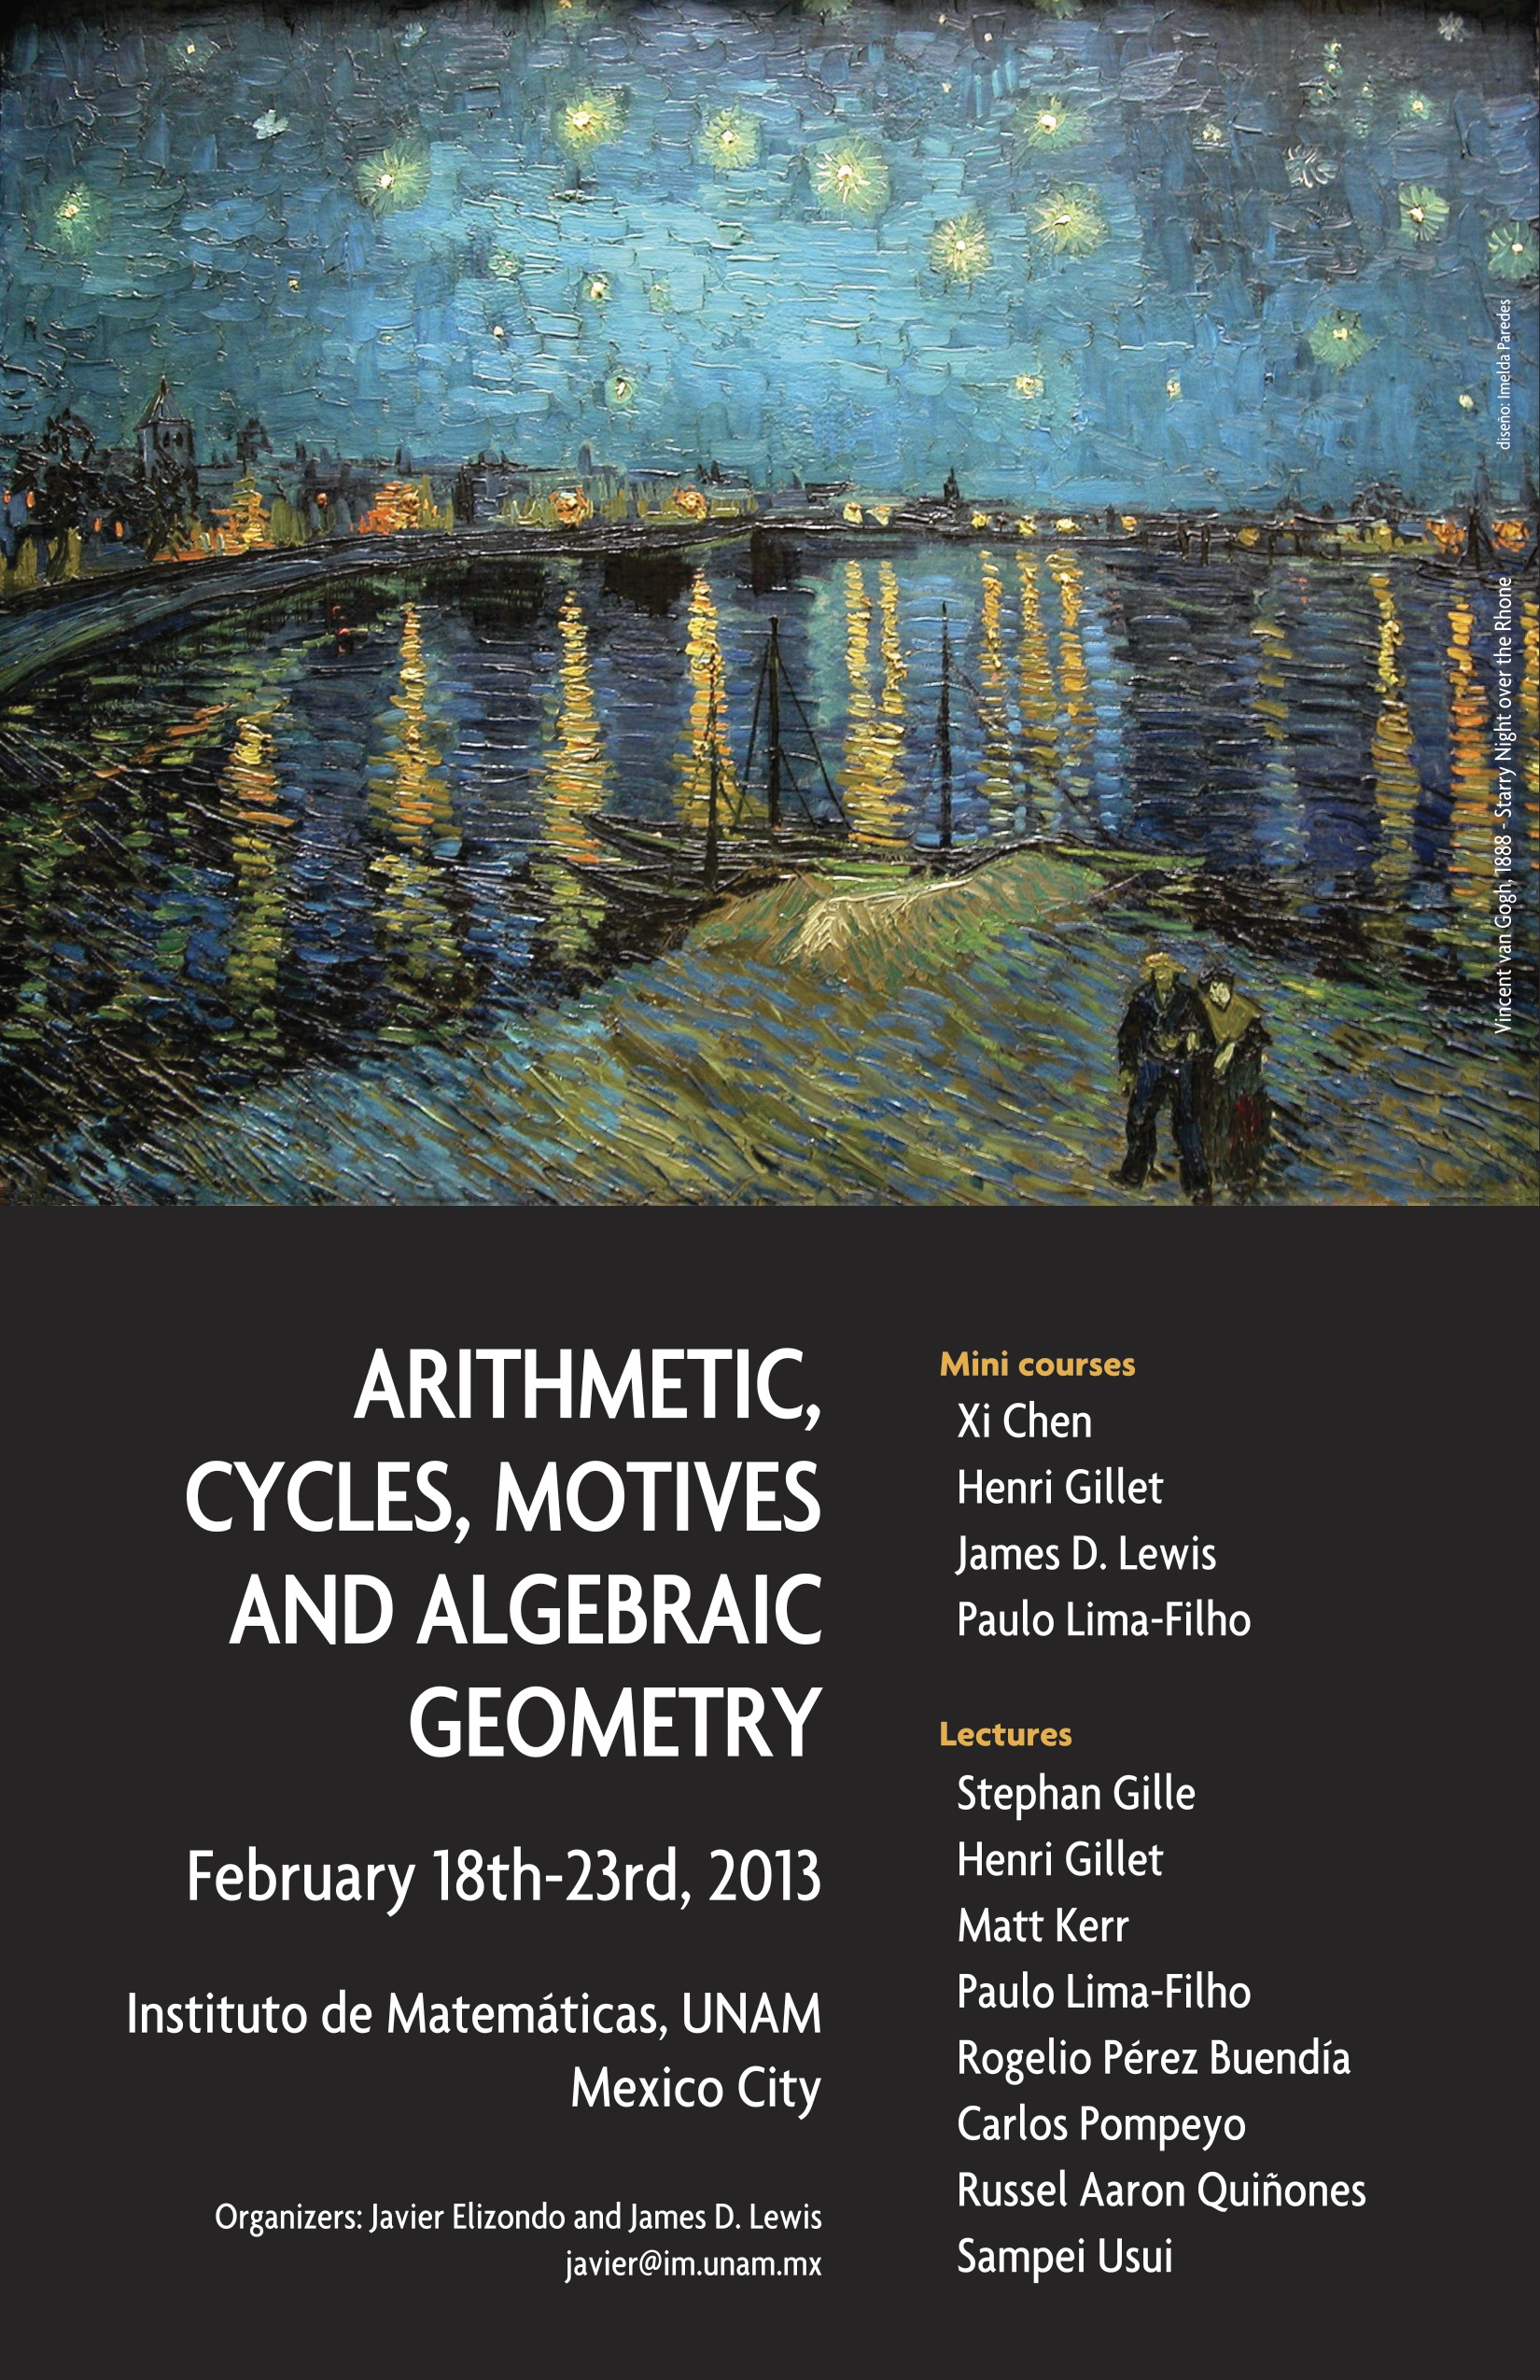 Arithmetic, cycles, motives and algebraic geometry.